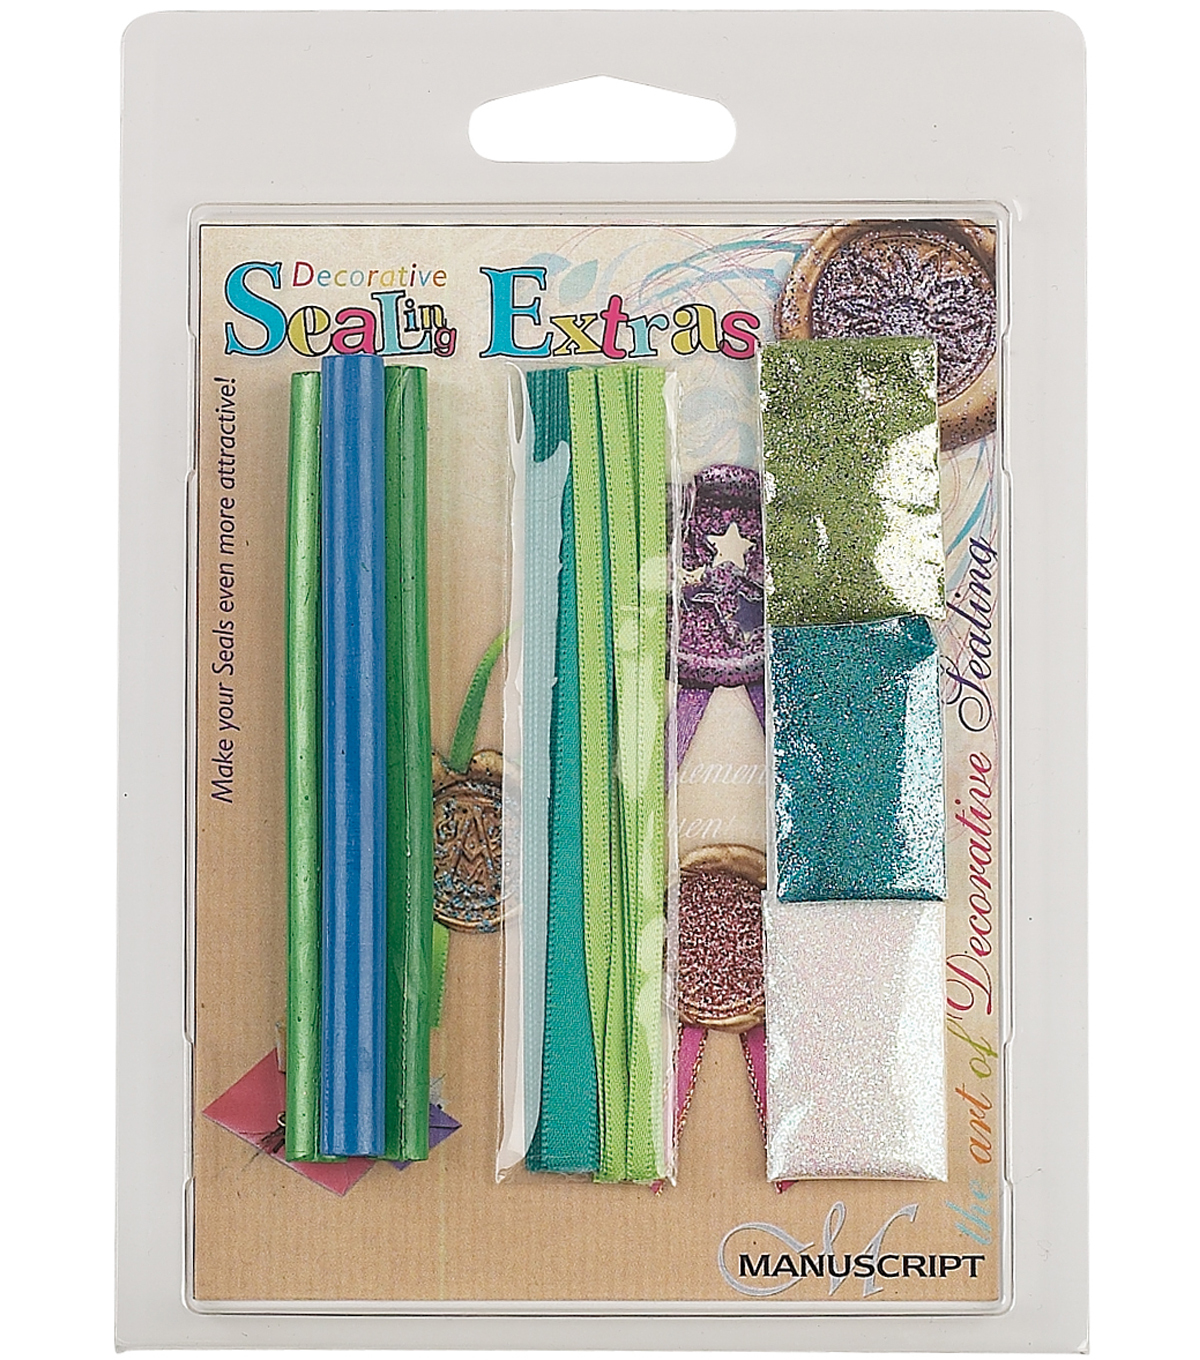 Manuscript Decorative Sealing Extras-Blue/Green